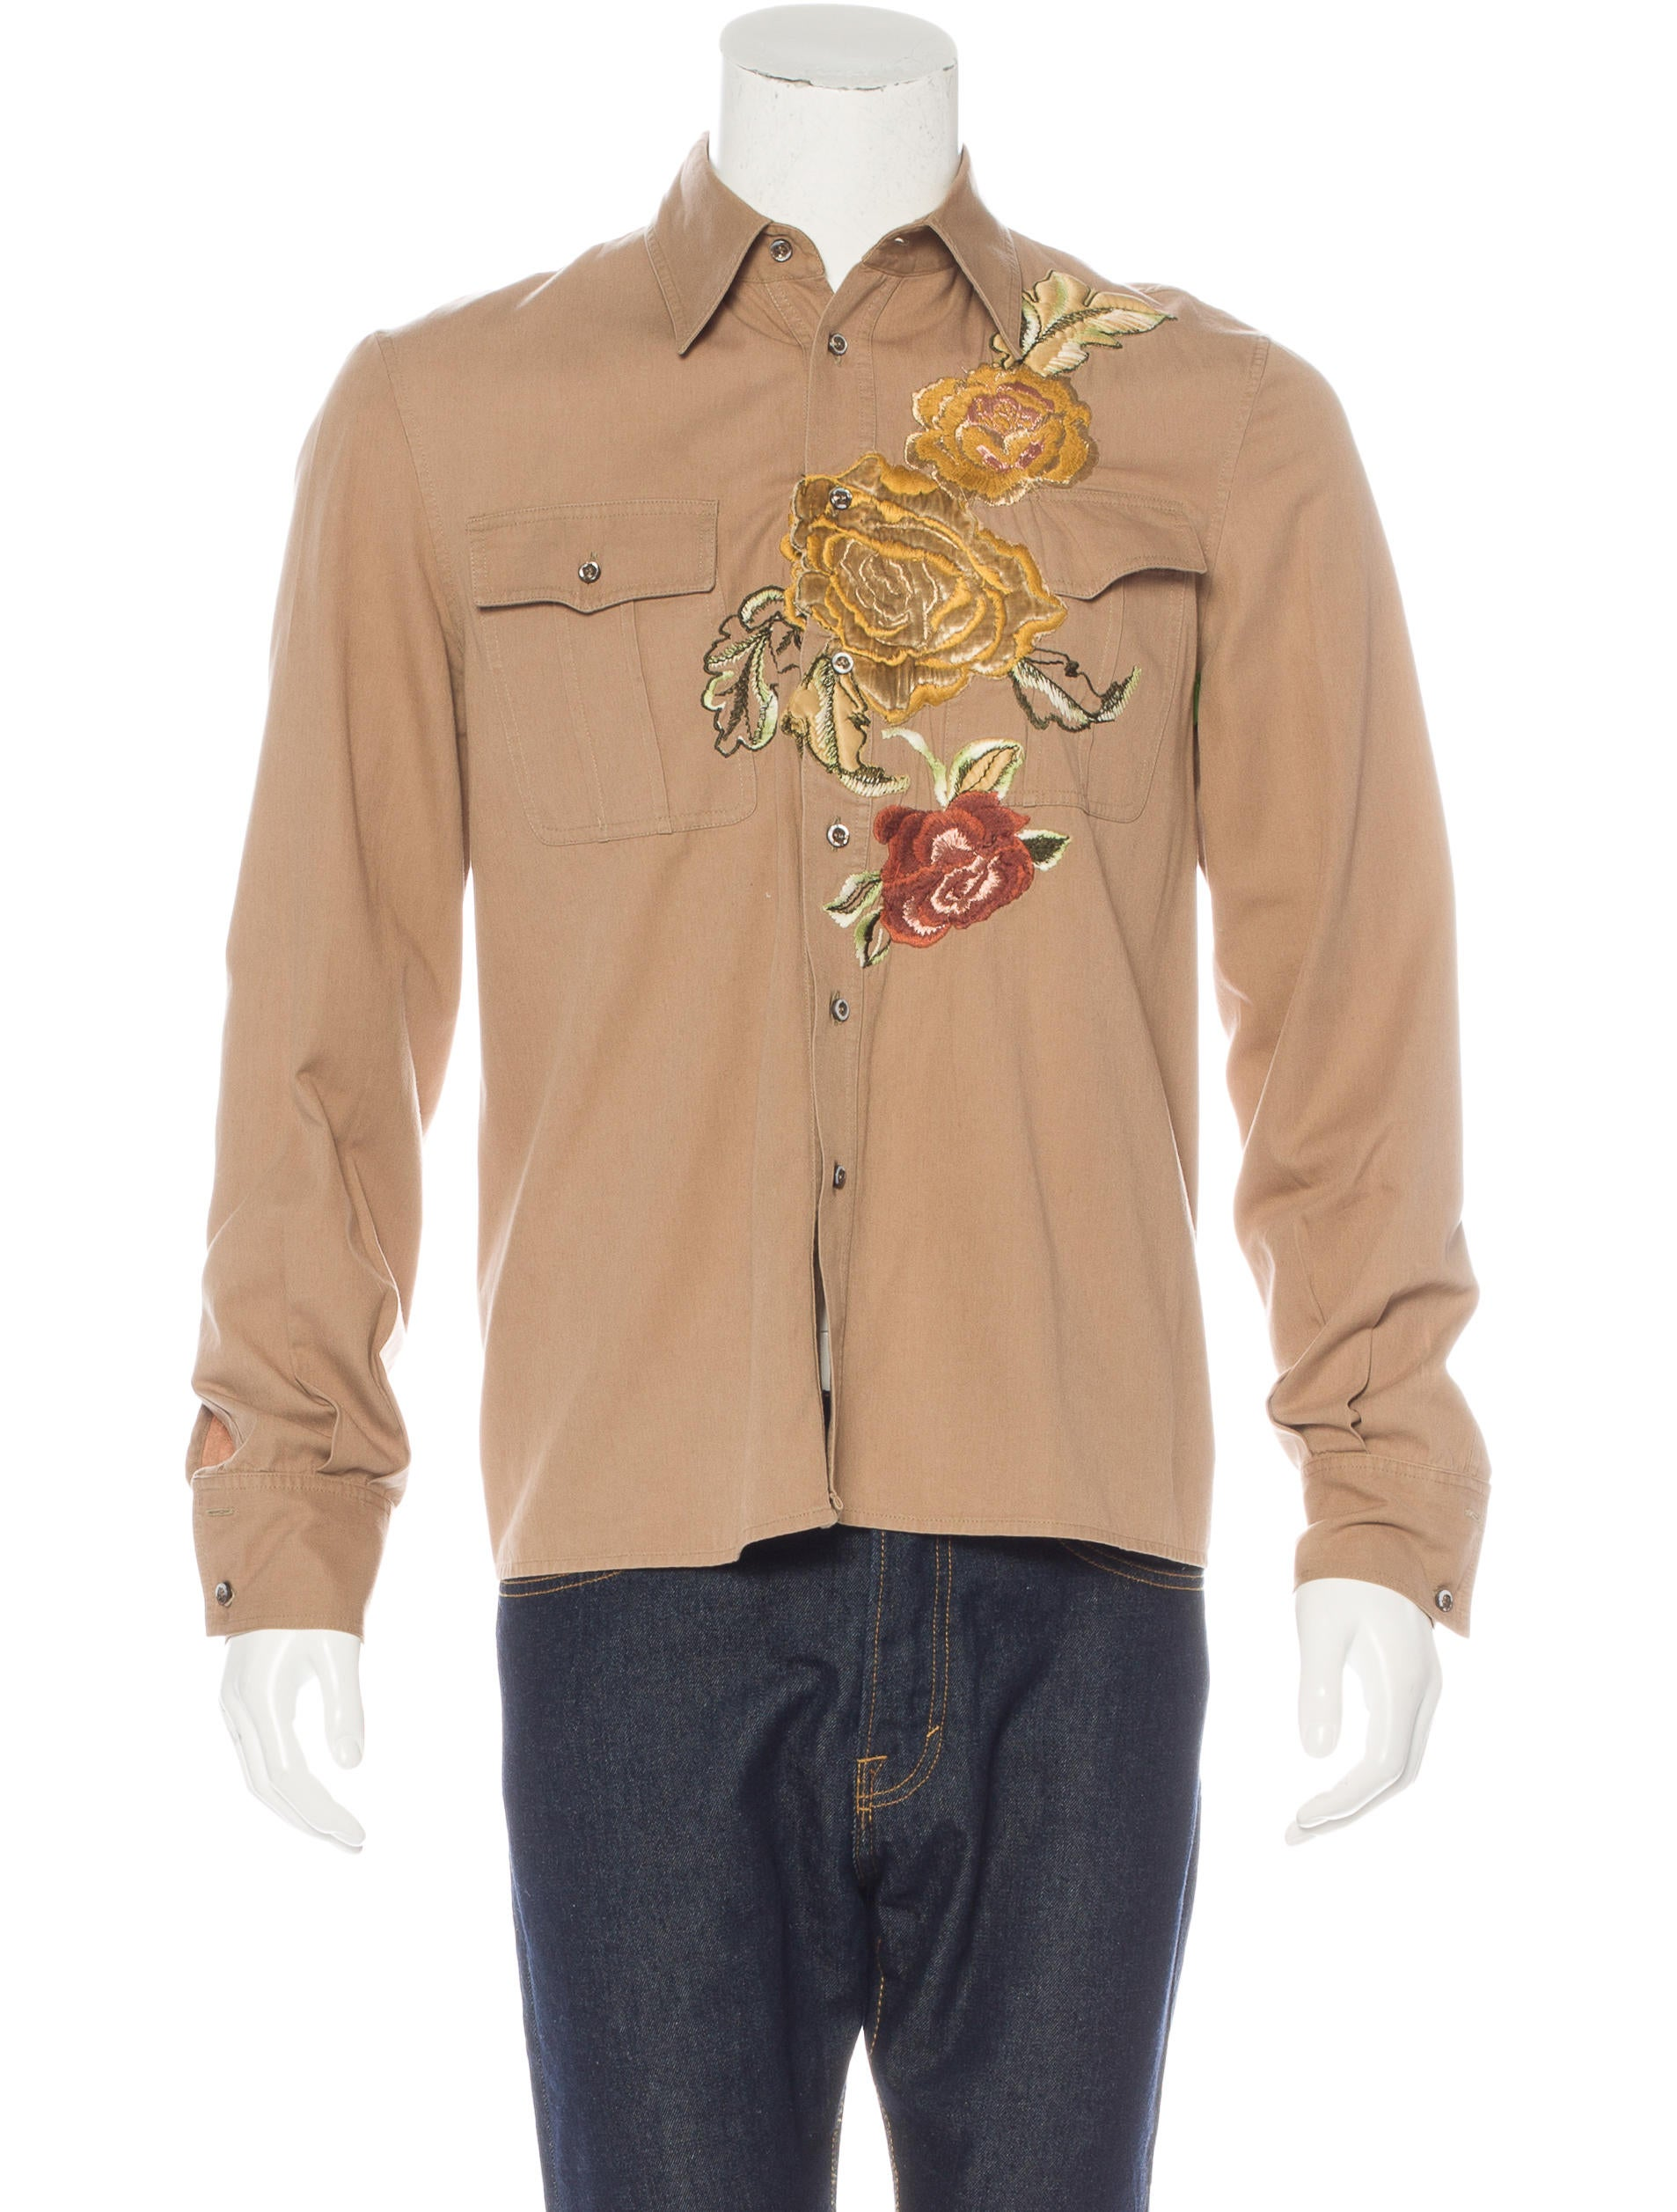 Roberto cavalli floral embroidered button up shirt